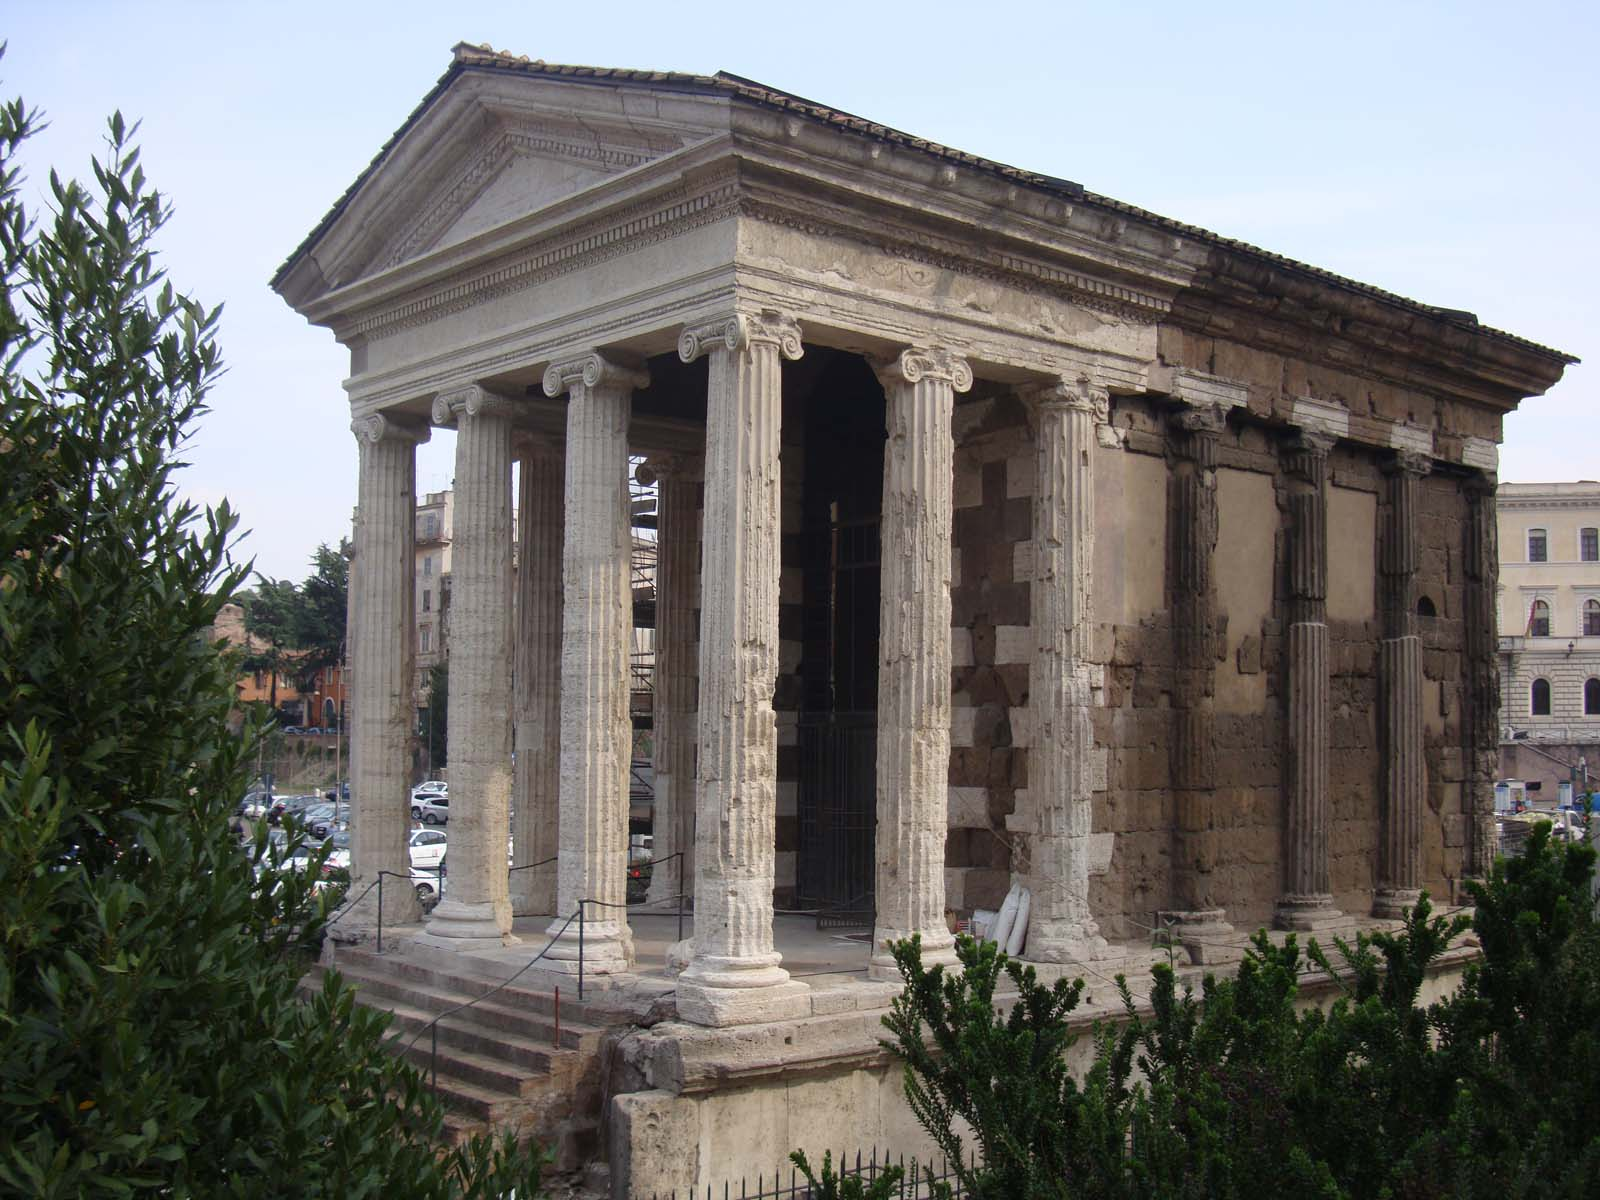 Temple of Portunus (Italy, 2006 Watch):  Funding from American Express helped to restore this rare survivor of Roman Republican architecture in Rome's Forum Boarium.